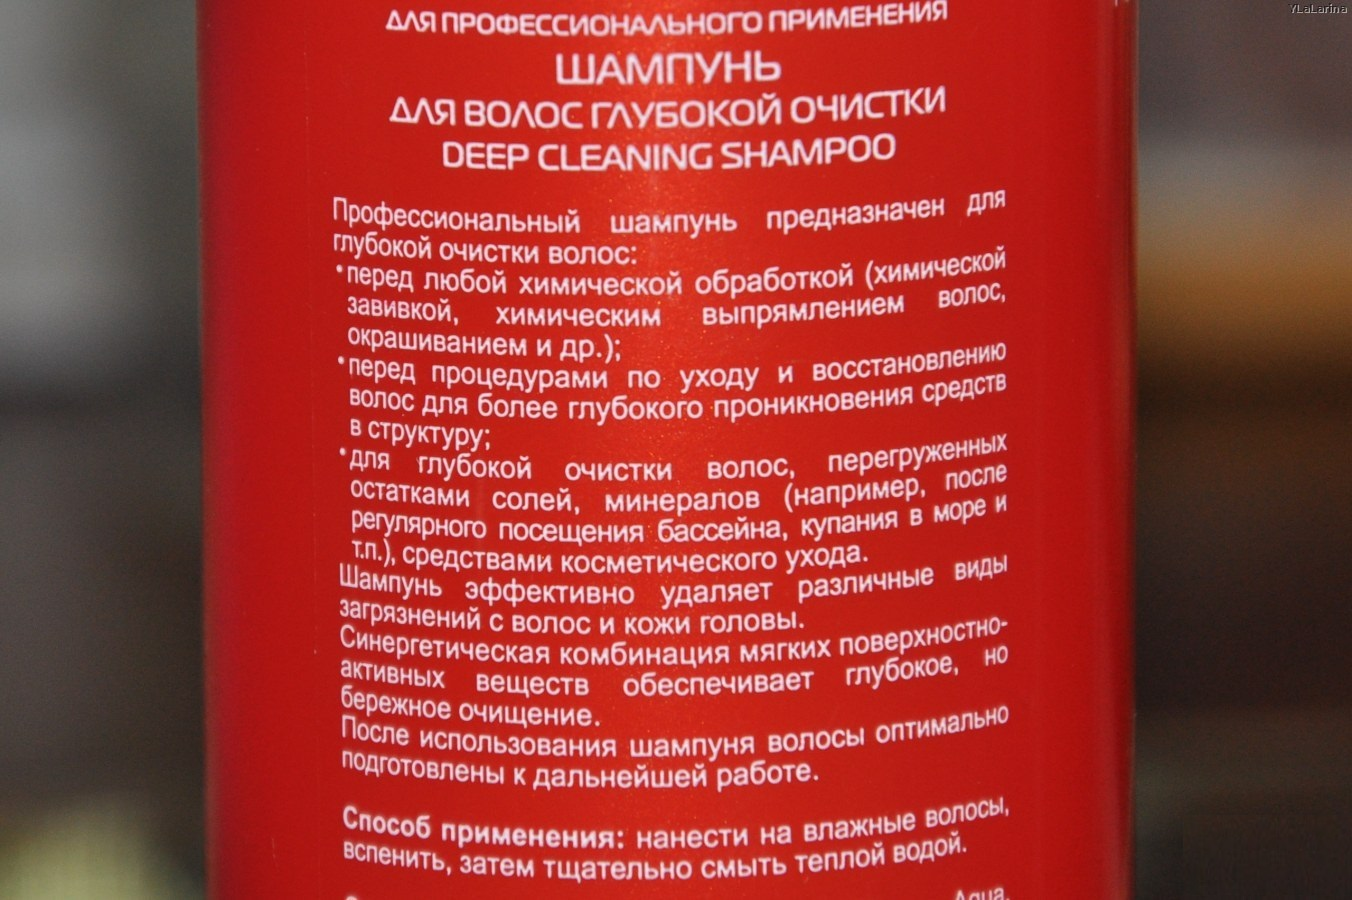 Шампунь CONCEPT Deep Cleaning Shampoo